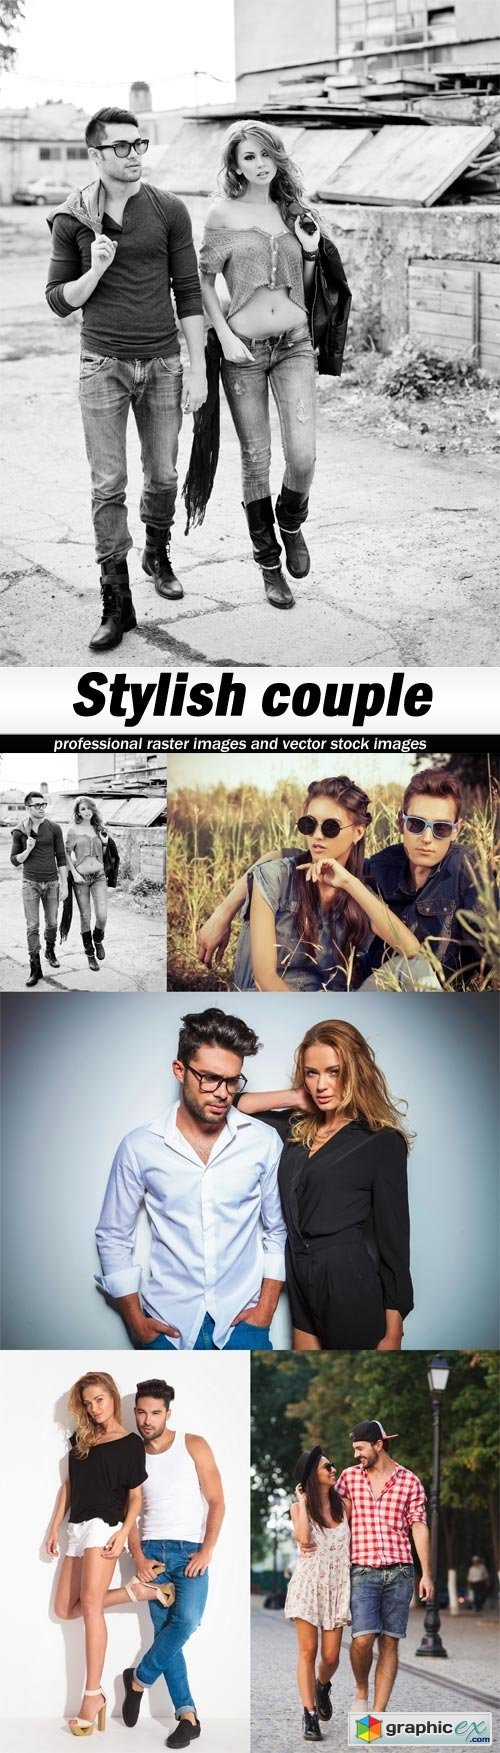 Stylish couple-5xJPEGs